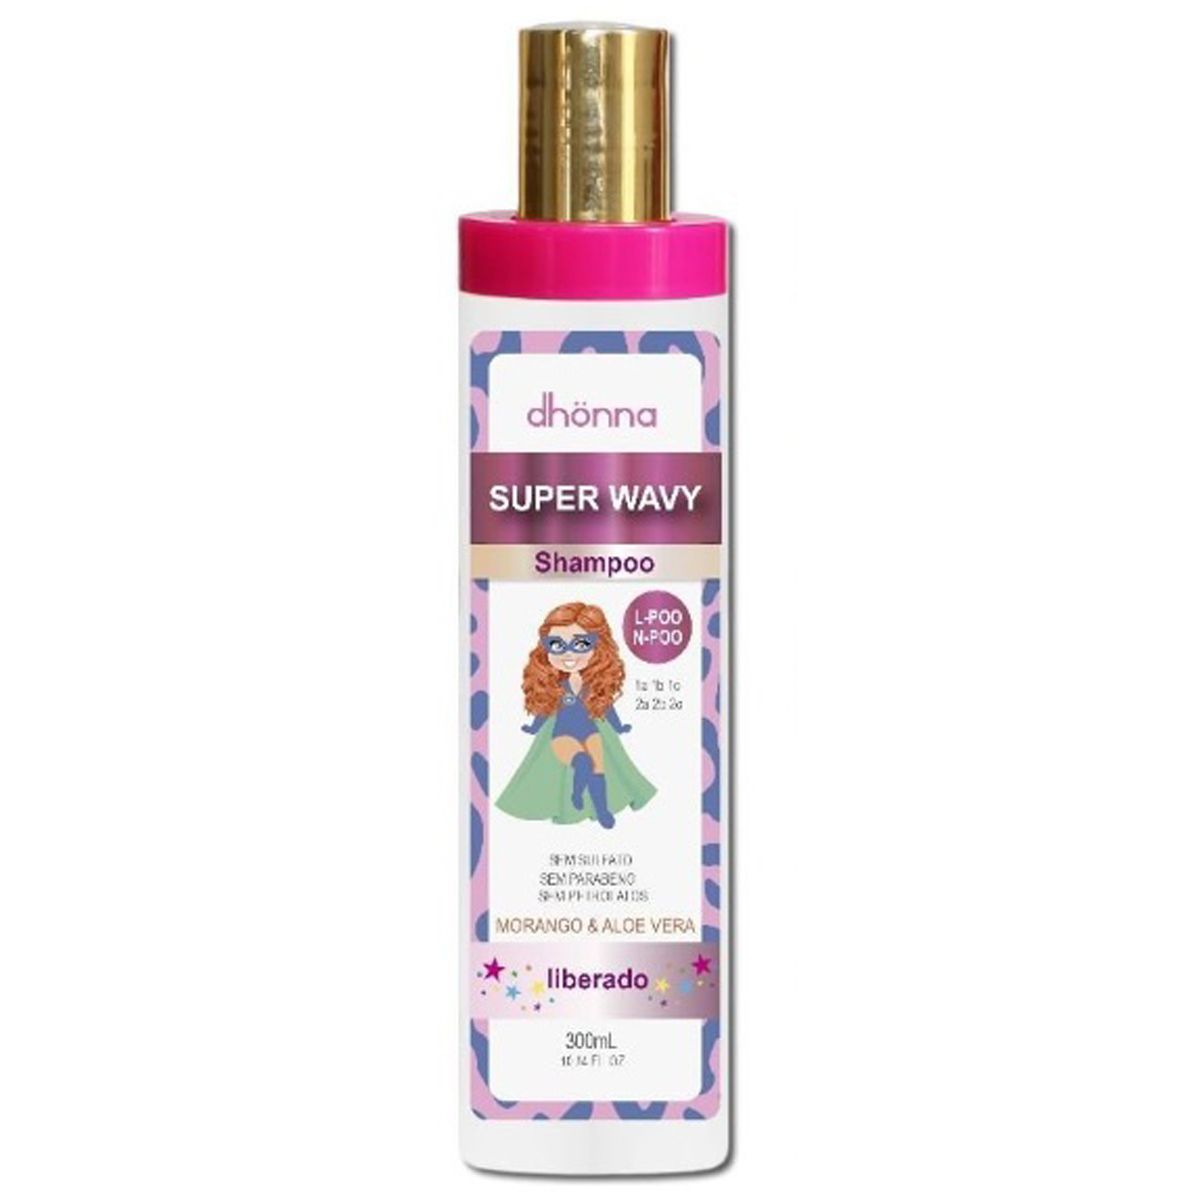 Dhonna - Super Wavy - Shampoo - 300ml